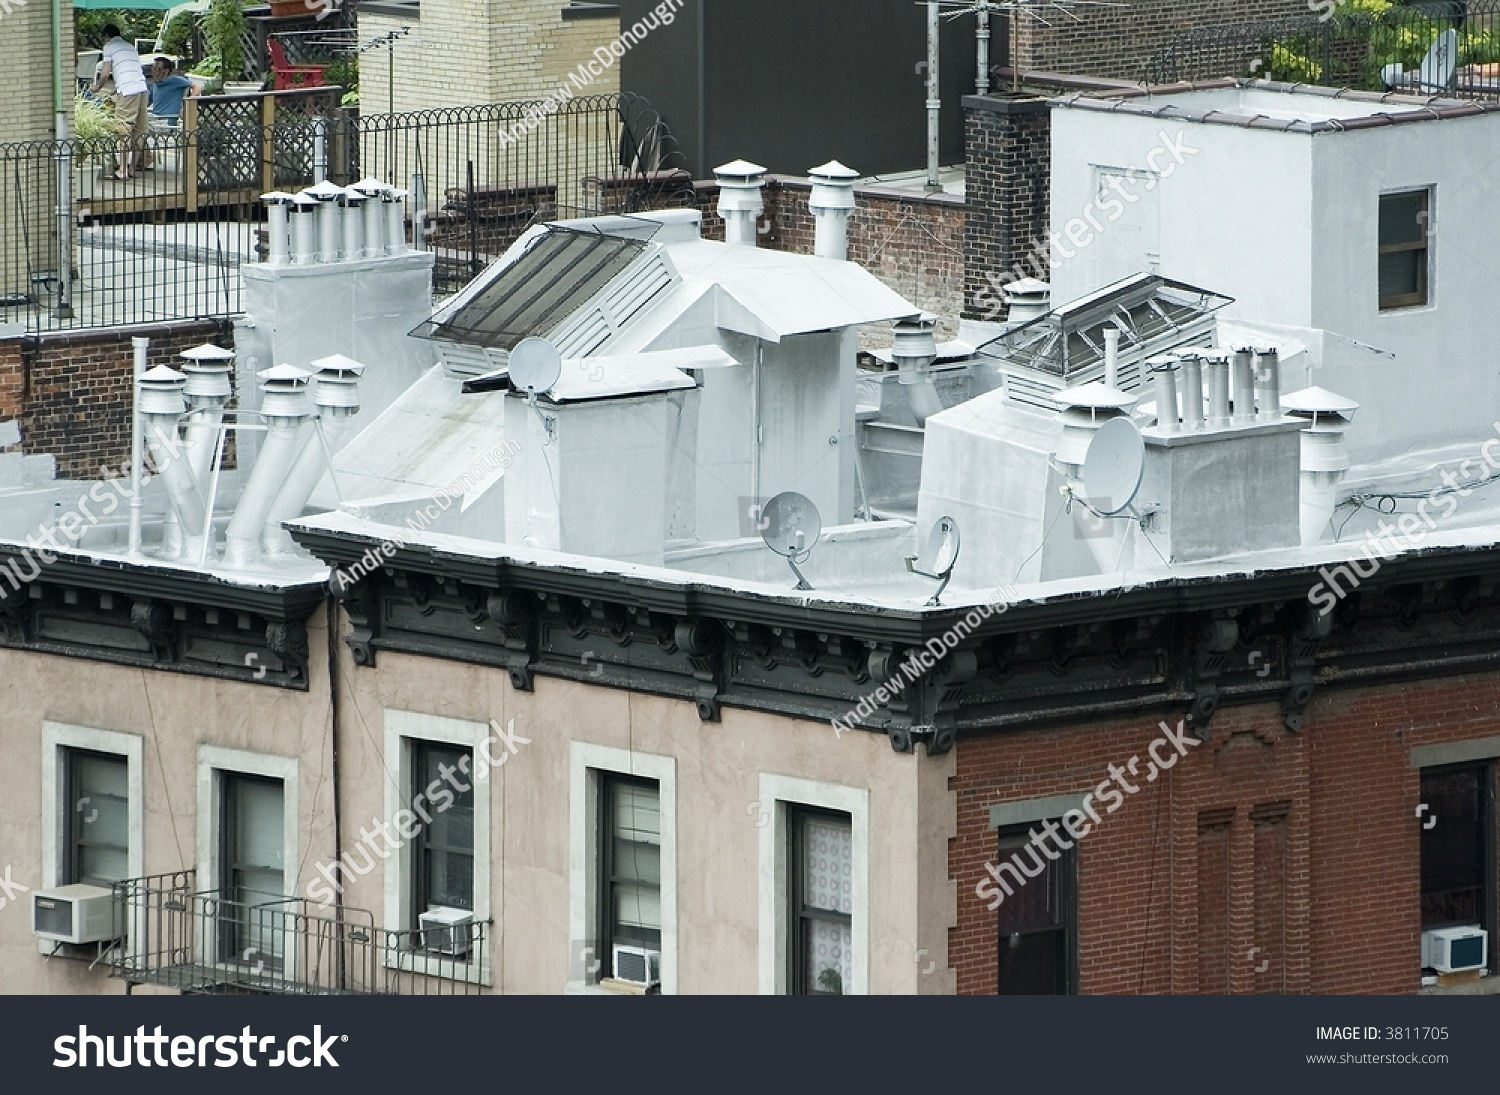 stock-photo-roof-top-of-an-apartment-bui